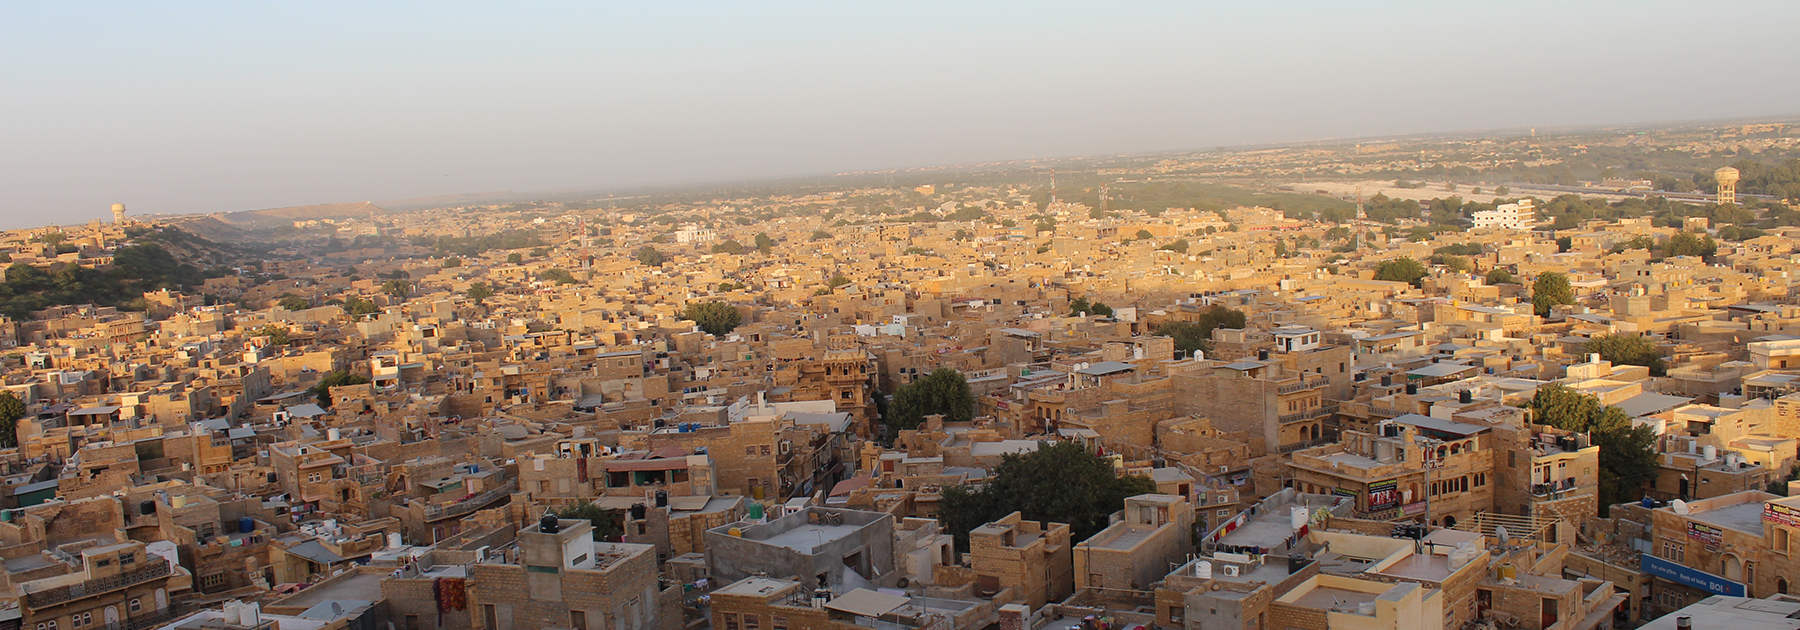 "A view of the ""Golden City"", Jaisalmer, from the top of the Jaisalmer fort. (Vivek2285, licensed under CC BY-SA 4.0)"